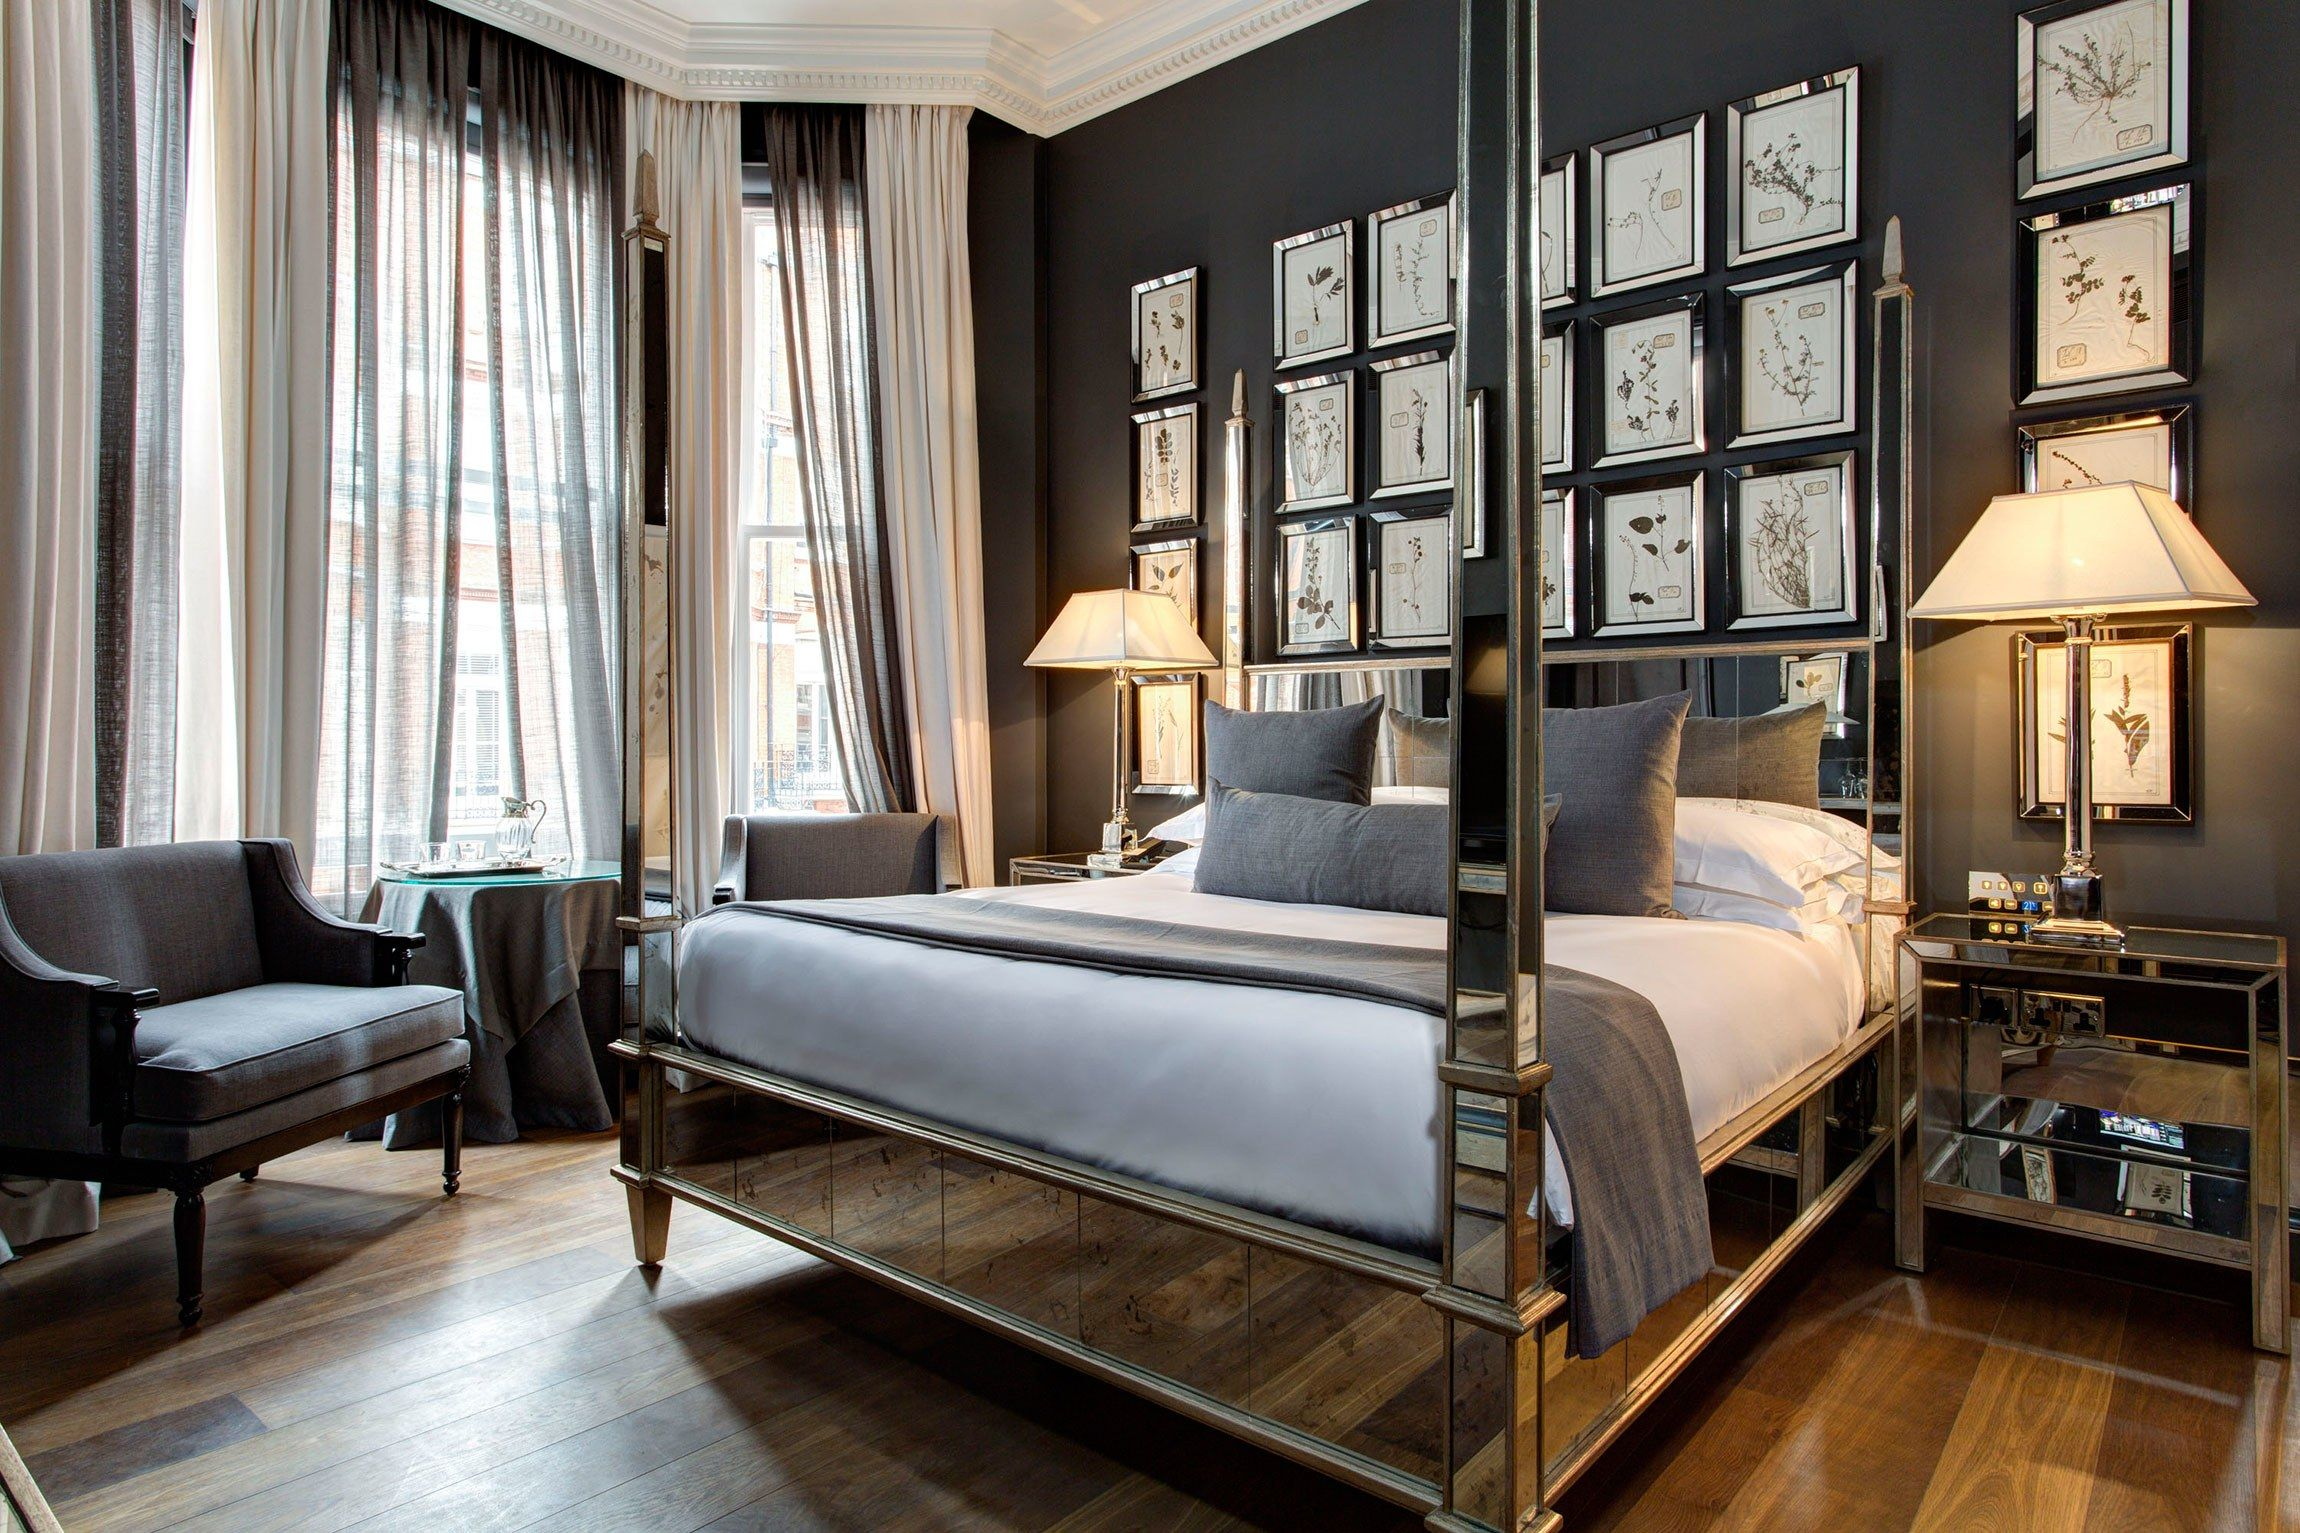 Get a first look at londons newest luxury hotel the franklin architectural digest